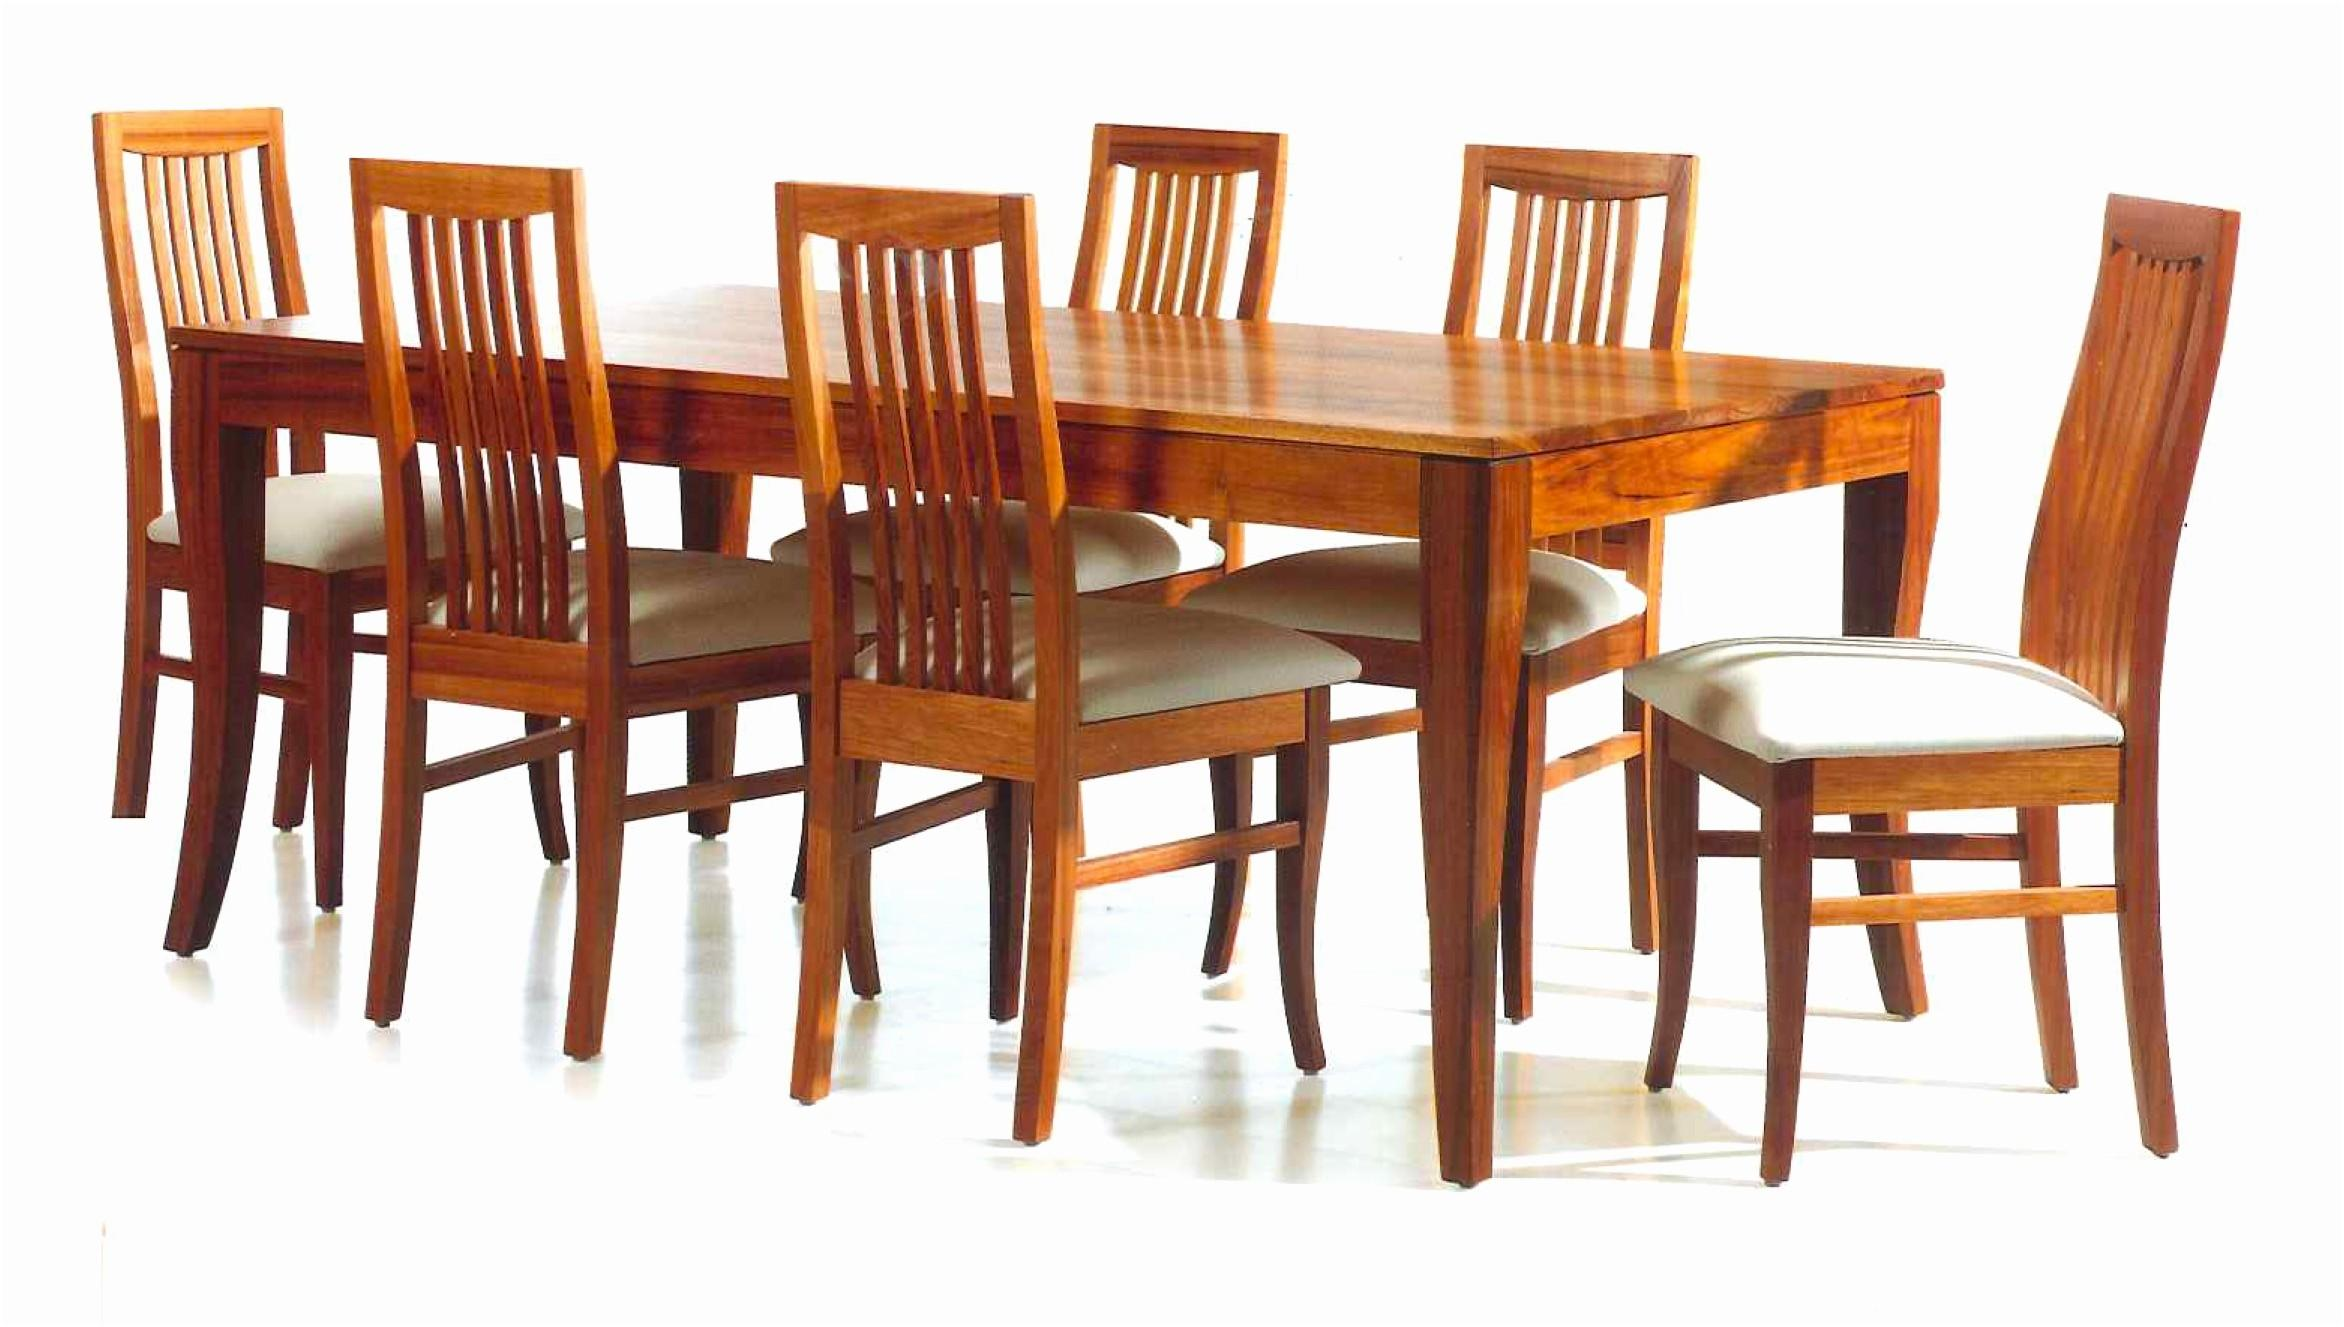 Dining Table Inspirational Room Furniture Wooden